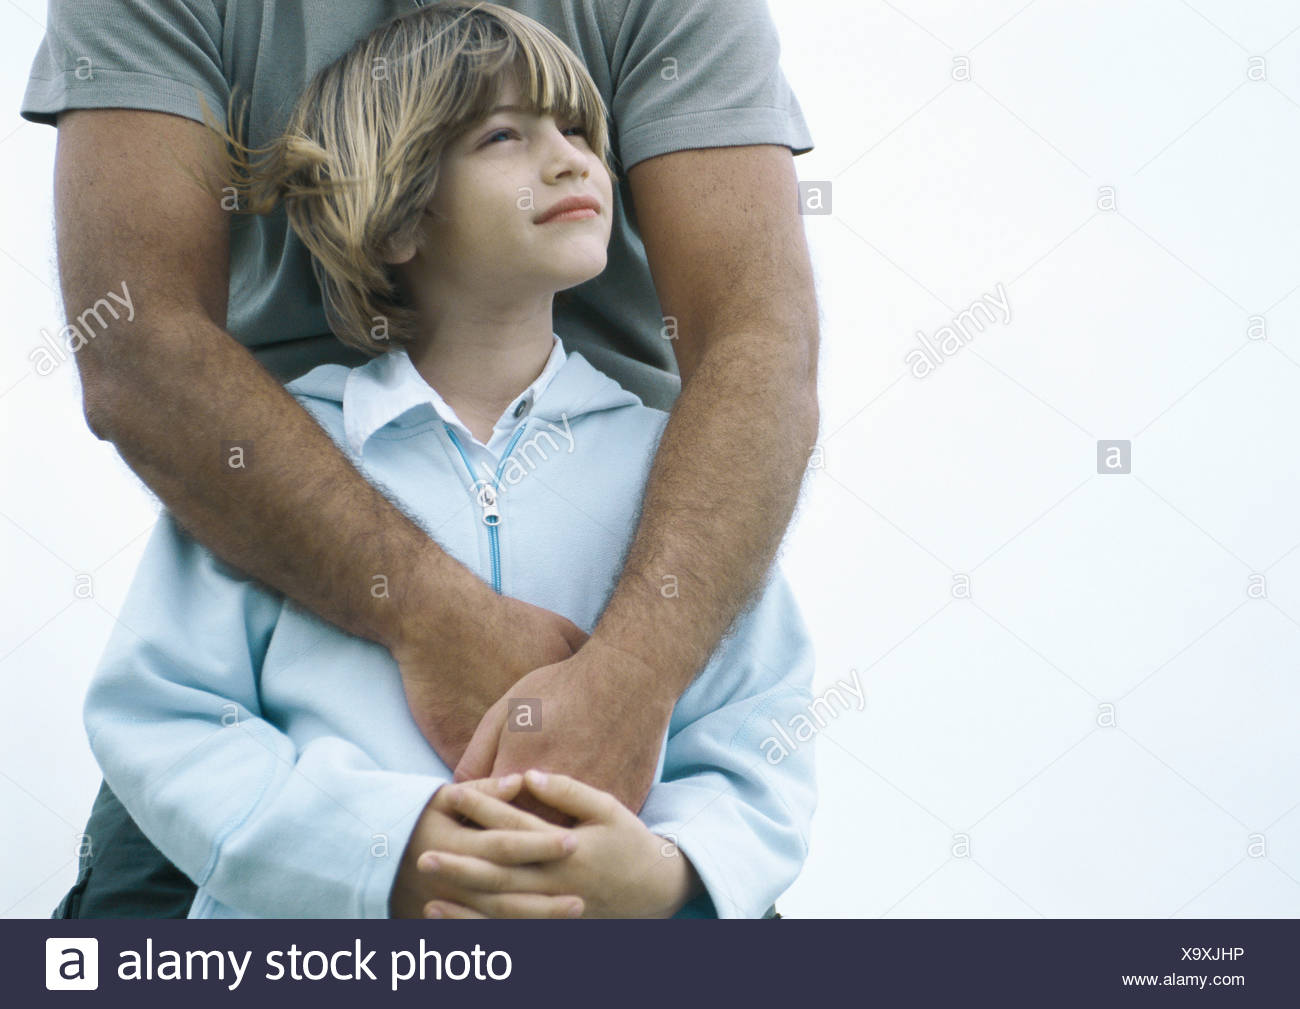 Boy standing with father's arms around him - Stock Image